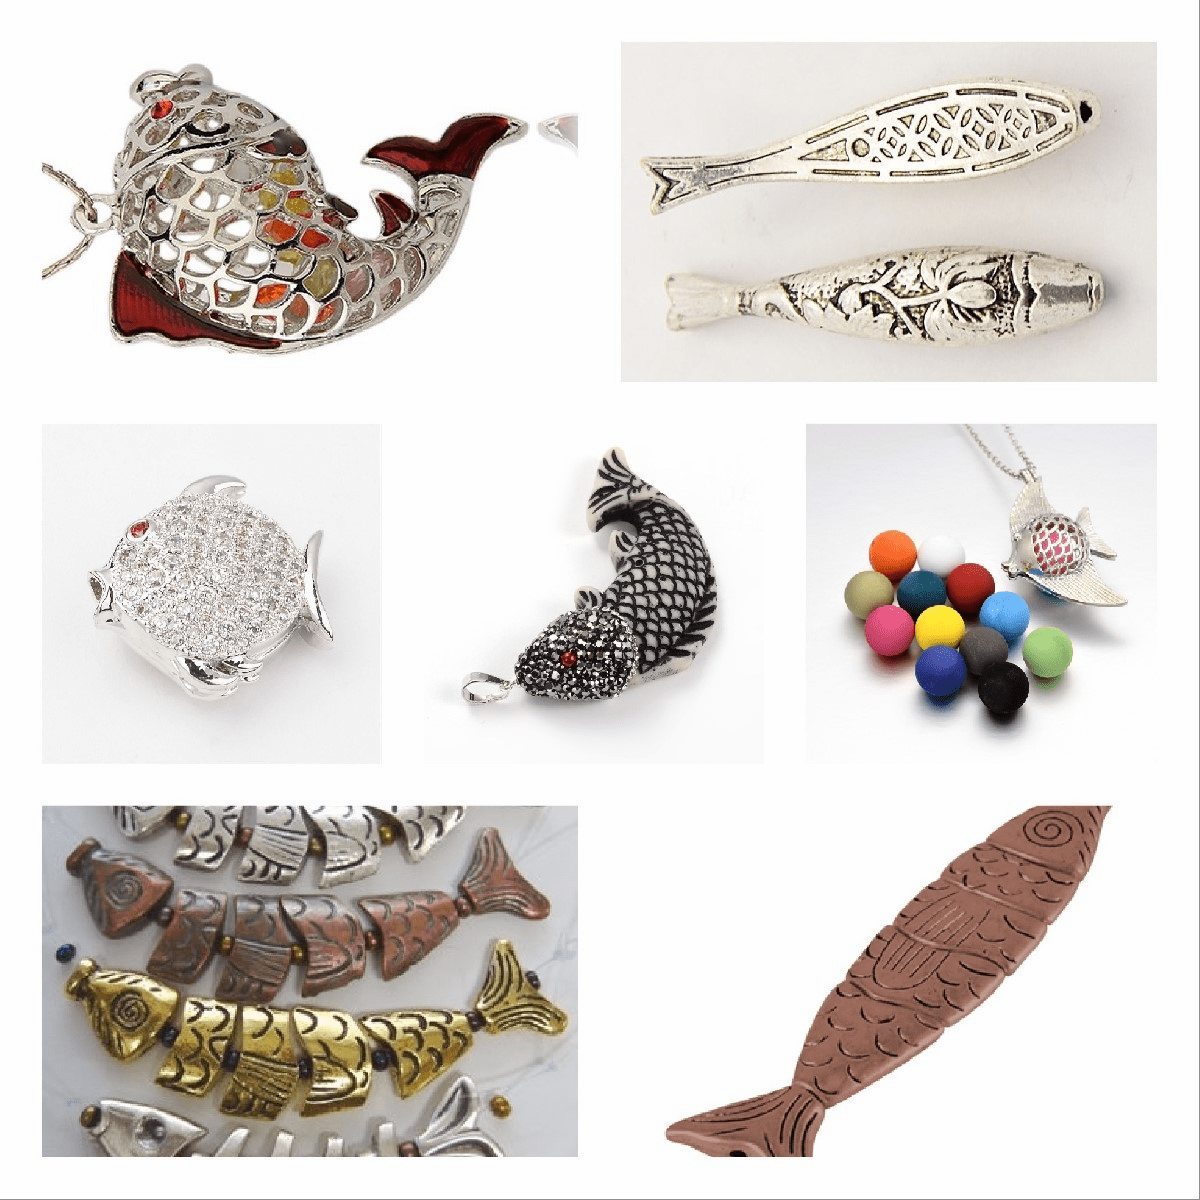 Fish Beads, Segmented worry fish, cage fish, pendant fish